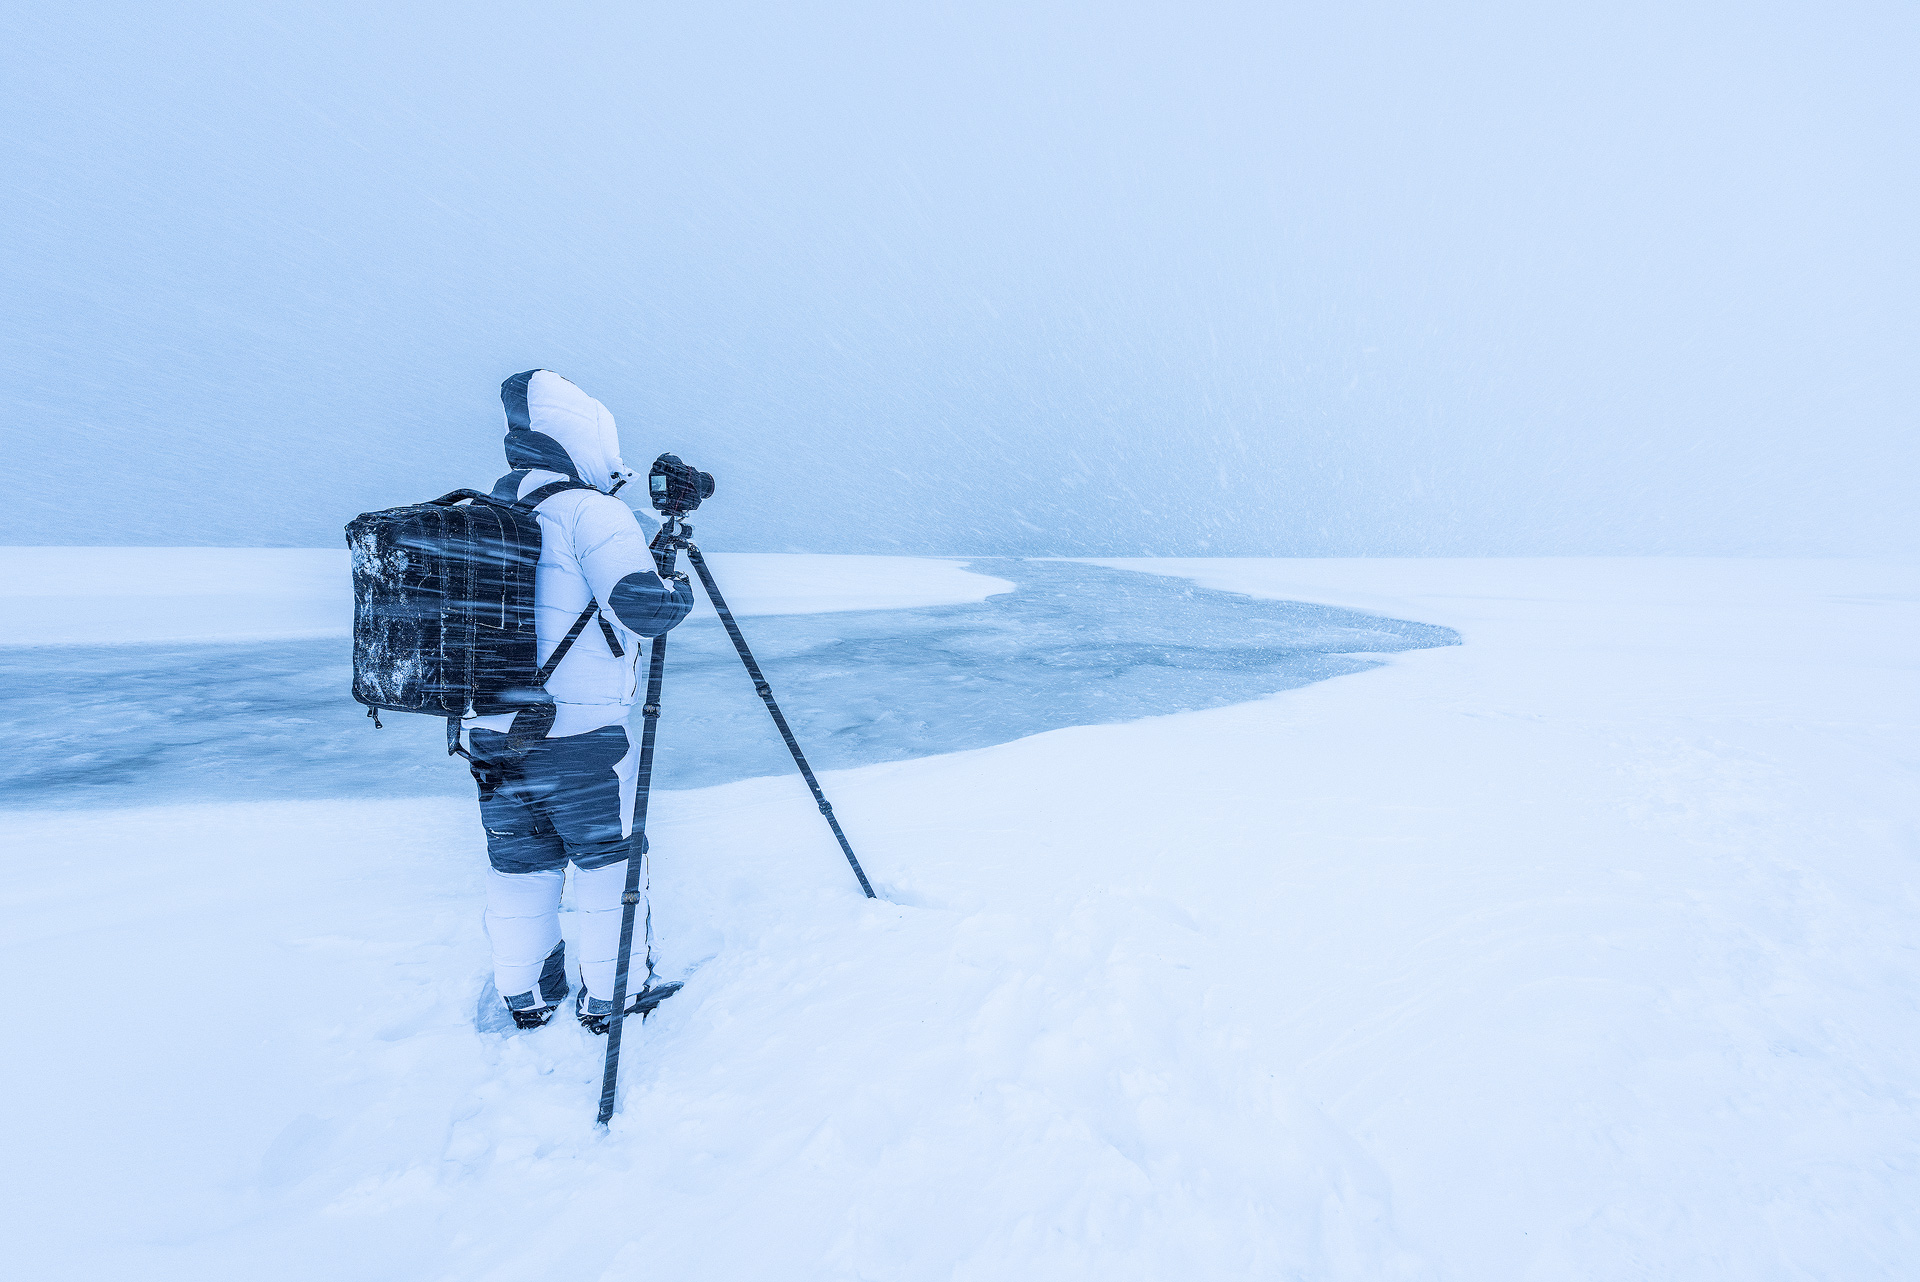 Essential equipment for landscape photography: tripod